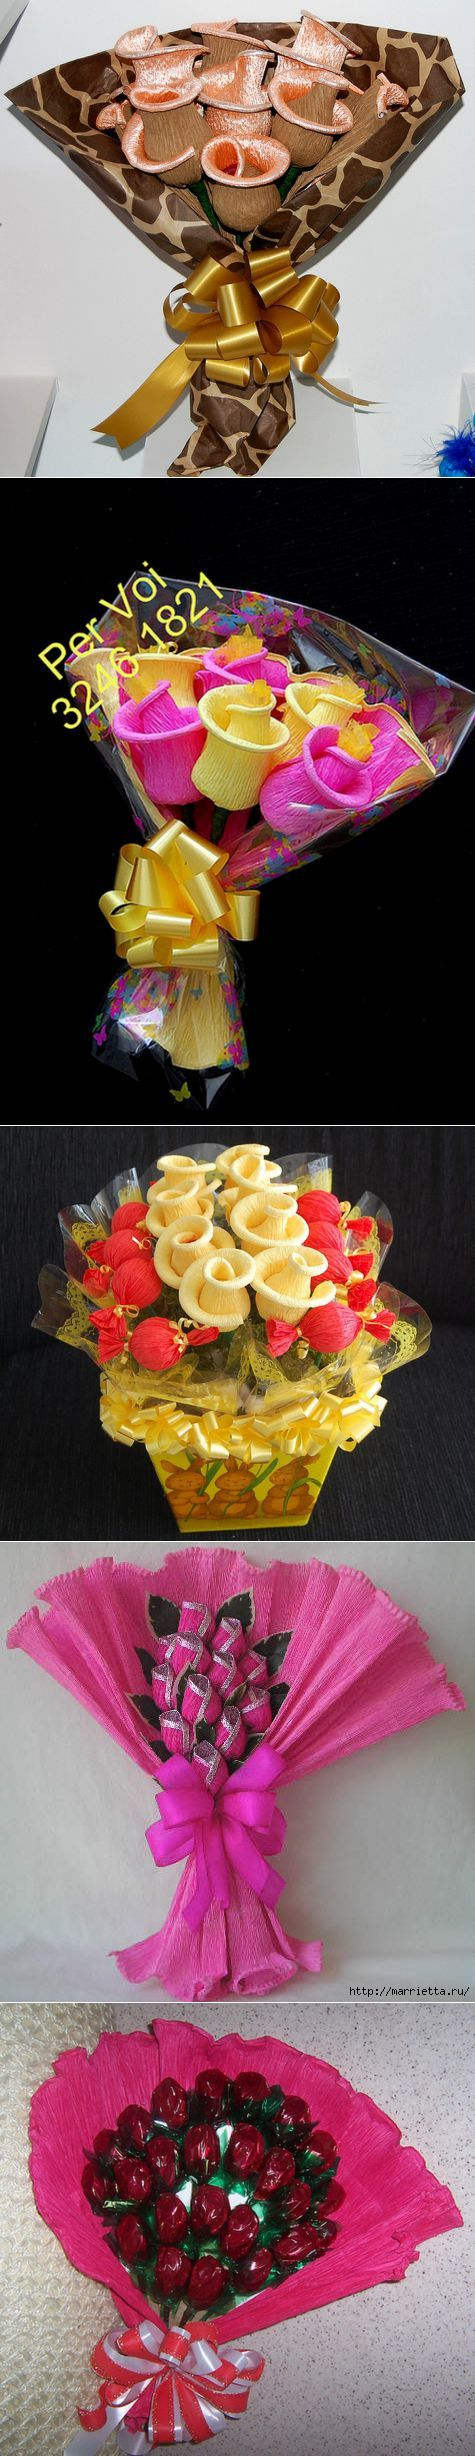 91 best candy bouquet images on pinterest candy bar bouquet candy chocolate flowerschocolate izmirmasajfo Choice Image